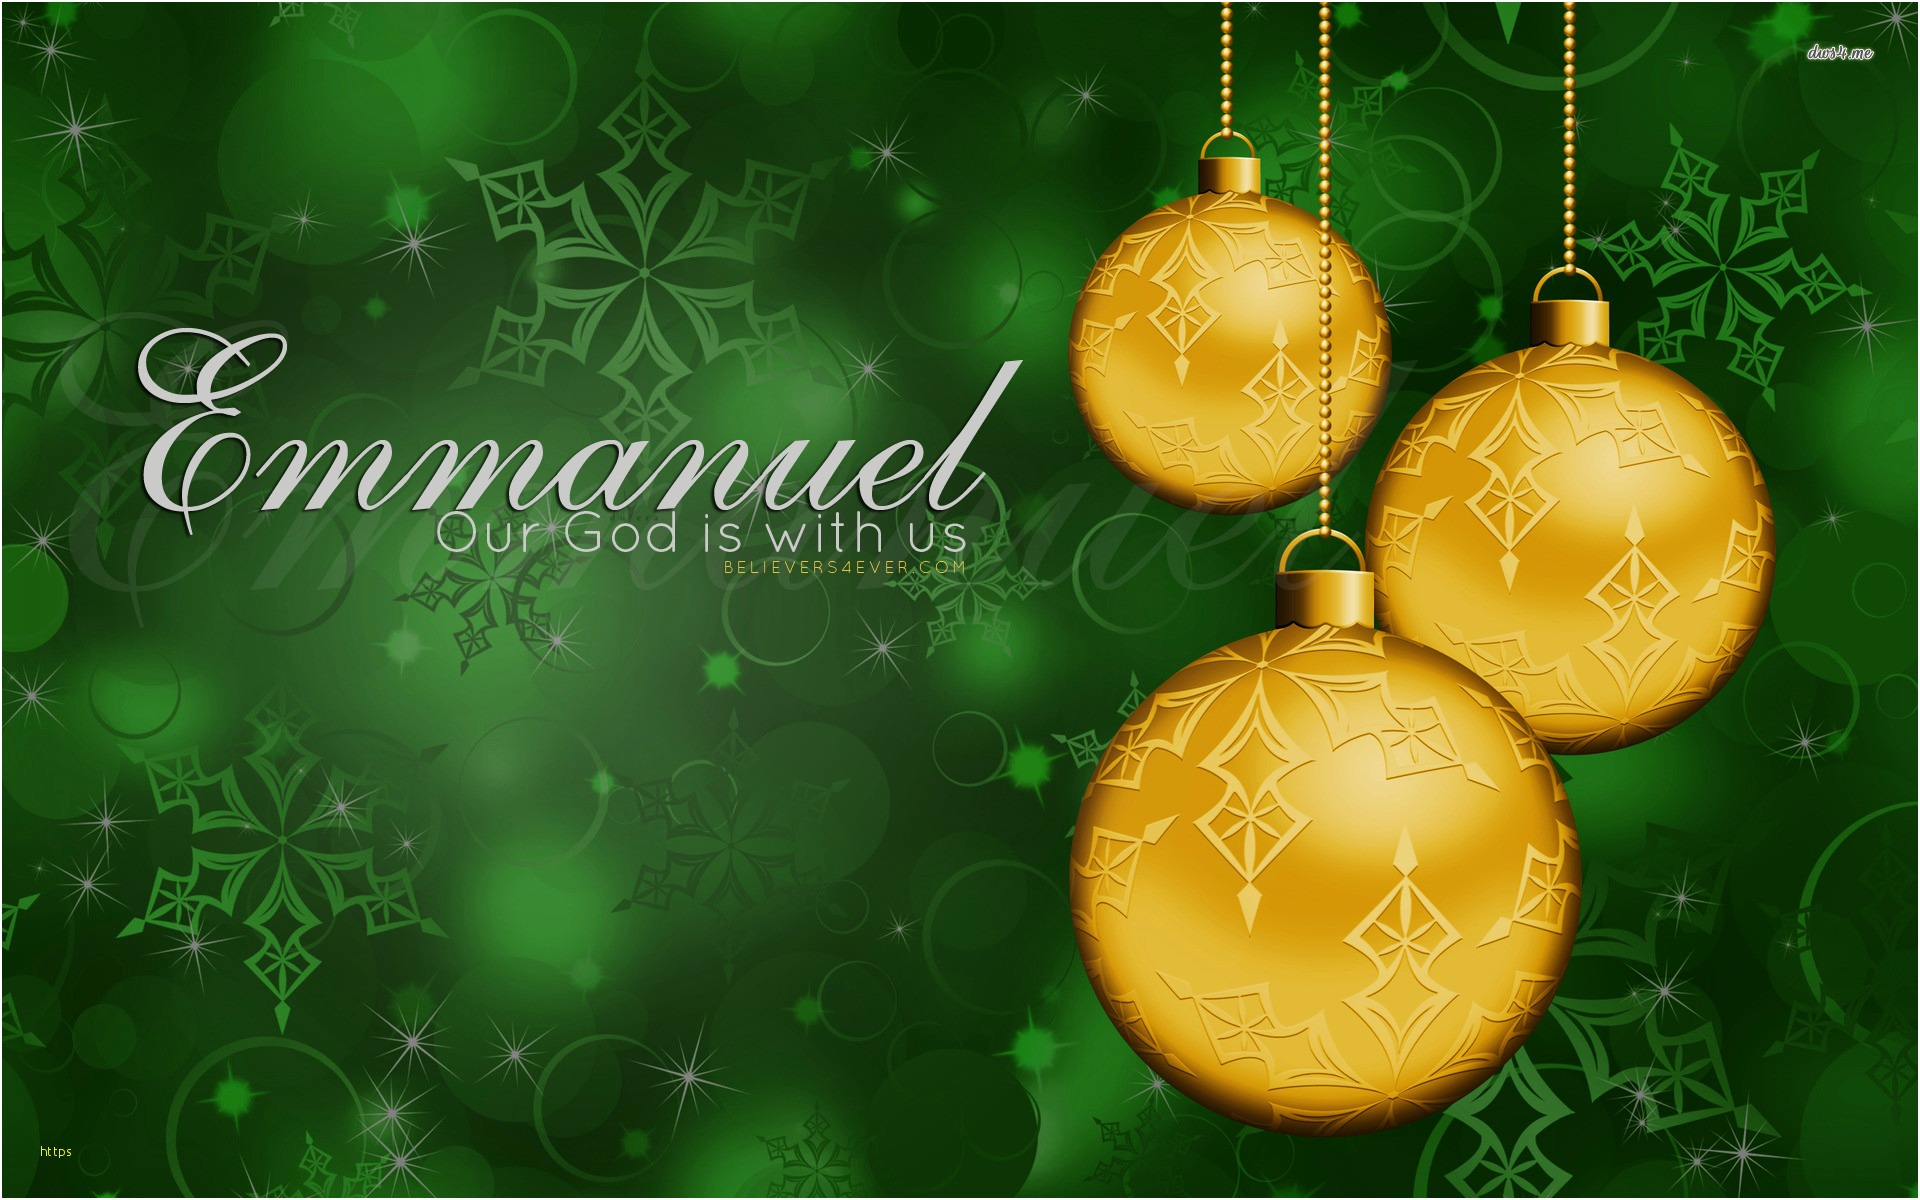 Free Christmas Wallpaper For Android Phone Best Of - Christian Christmas Desktop Background , HD Wallpaper & Backgrounds